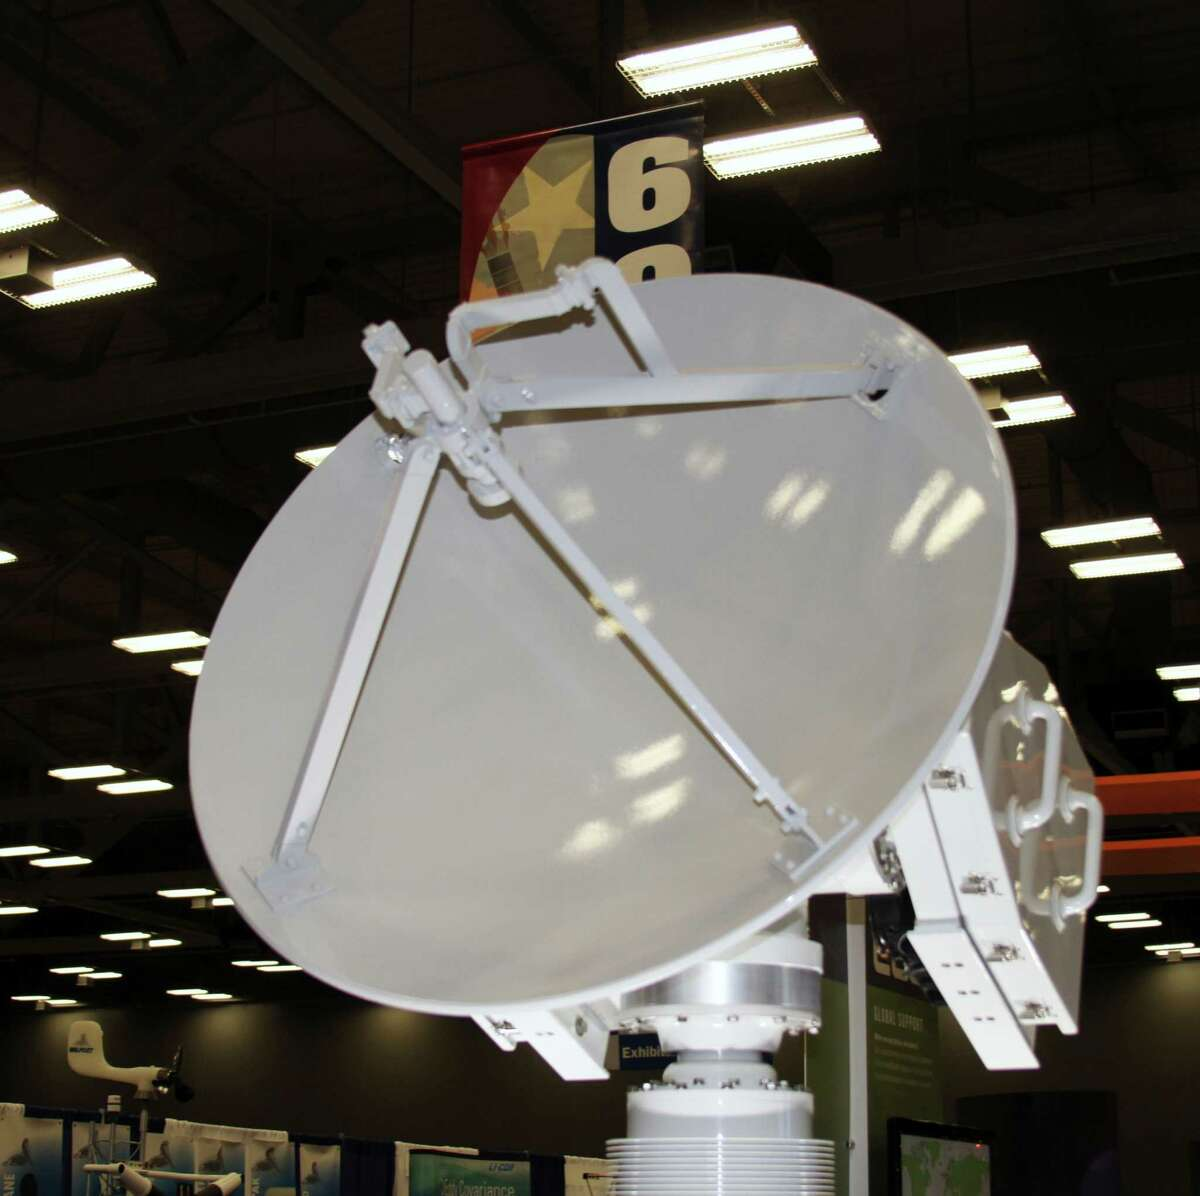 The exhibit hall at the Austin Convention Center was recently filled with the latest weather monitoring equipment during a meeting of the American Meteorological Society.